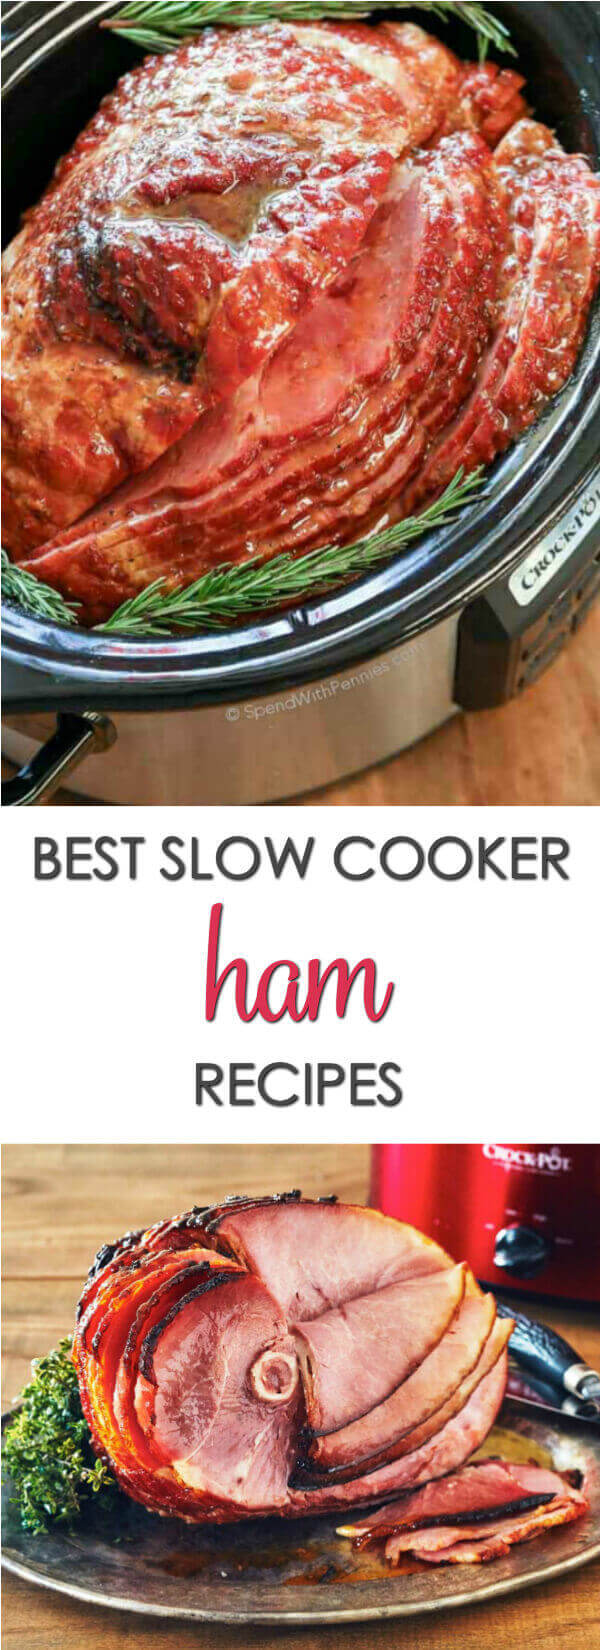 Take a hands off approach to your holiday dinner with these 20 Slow Cooker Ham Recipes.  You'll find traditional recipes like easy slow cooker spiral ham to recipes that feature ham in other ways.  These will be some of your favorite Easter recipes. #itisakeeper #recipes #slowcooker #crockpot #easter